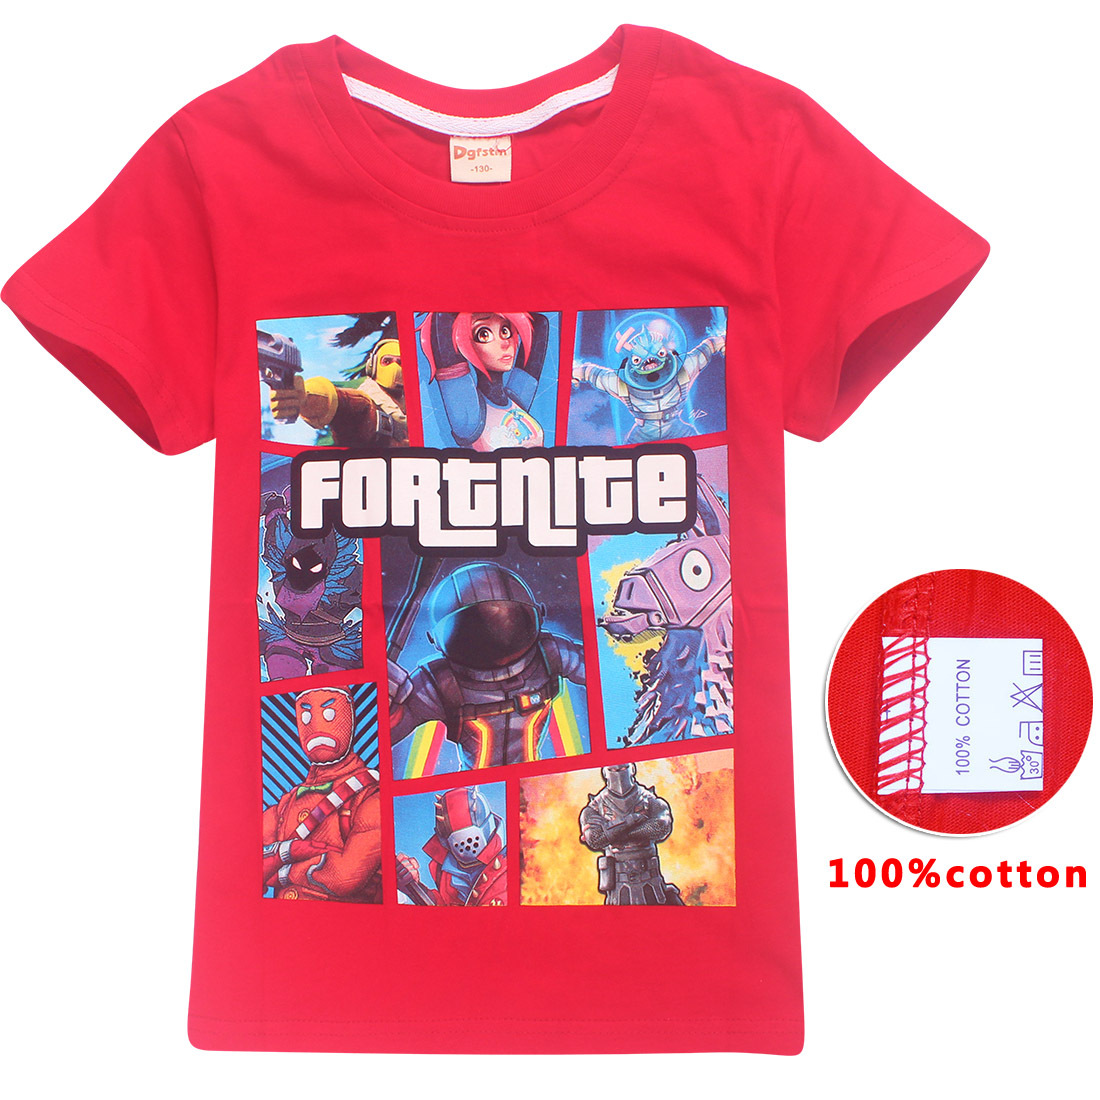 trousers Pants sets 100/% cotton Gaming Xbox One PS4 kids T-shirts Tops tshirts